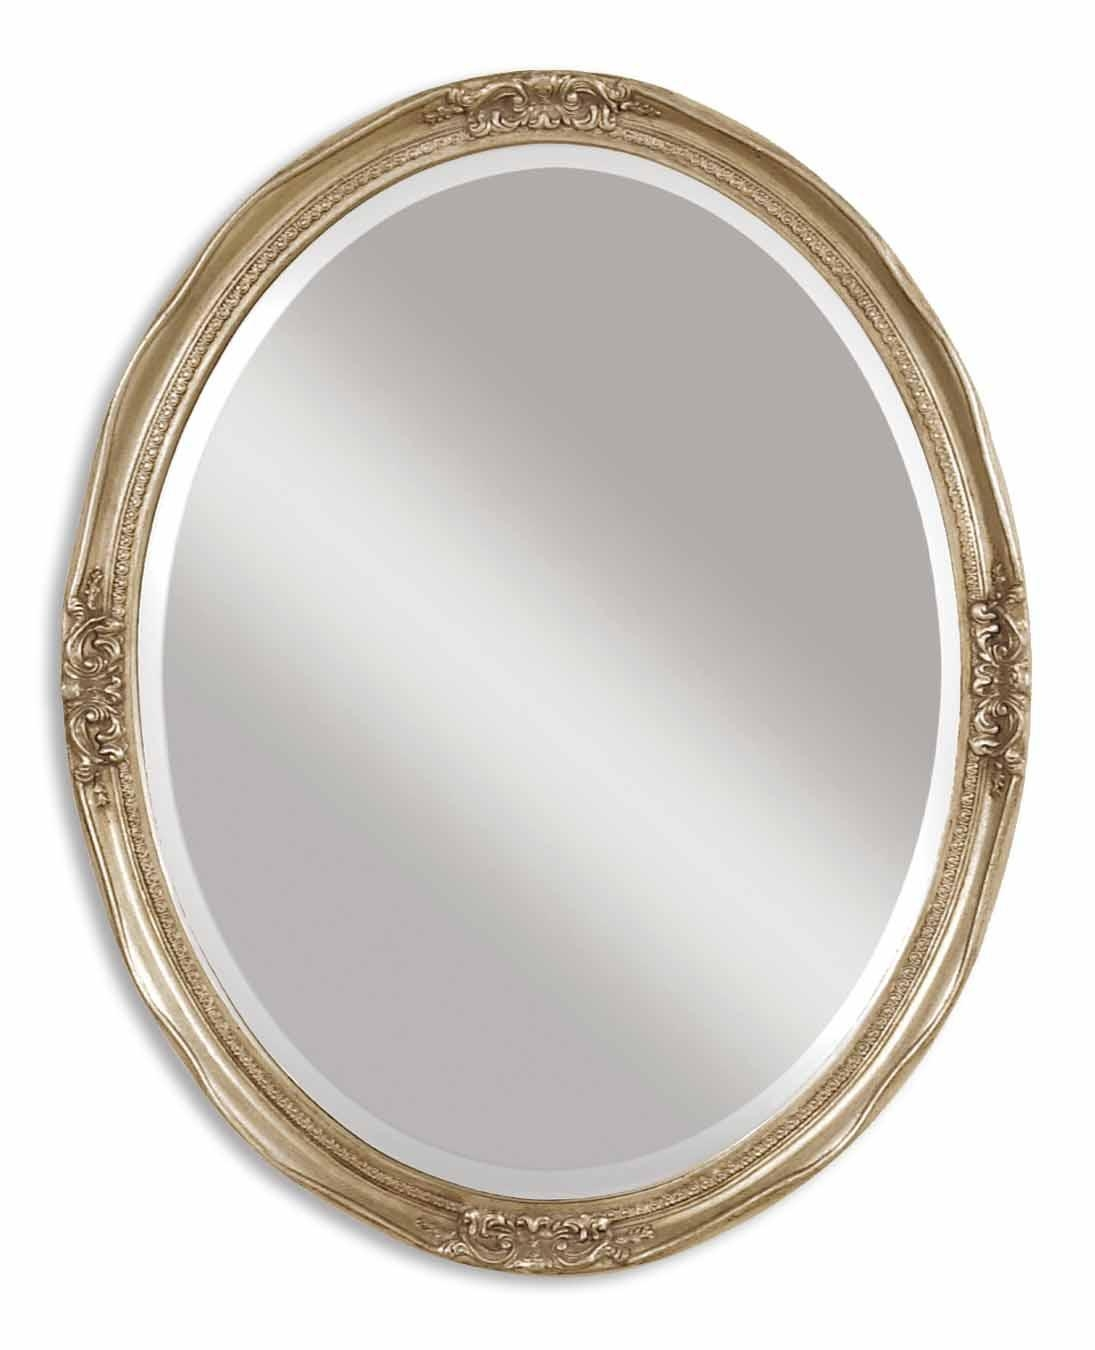 Uttermost Newport Oval Silver Mirror 08565 B Throughout Oval Silver Mirror (Image 16 of 20)